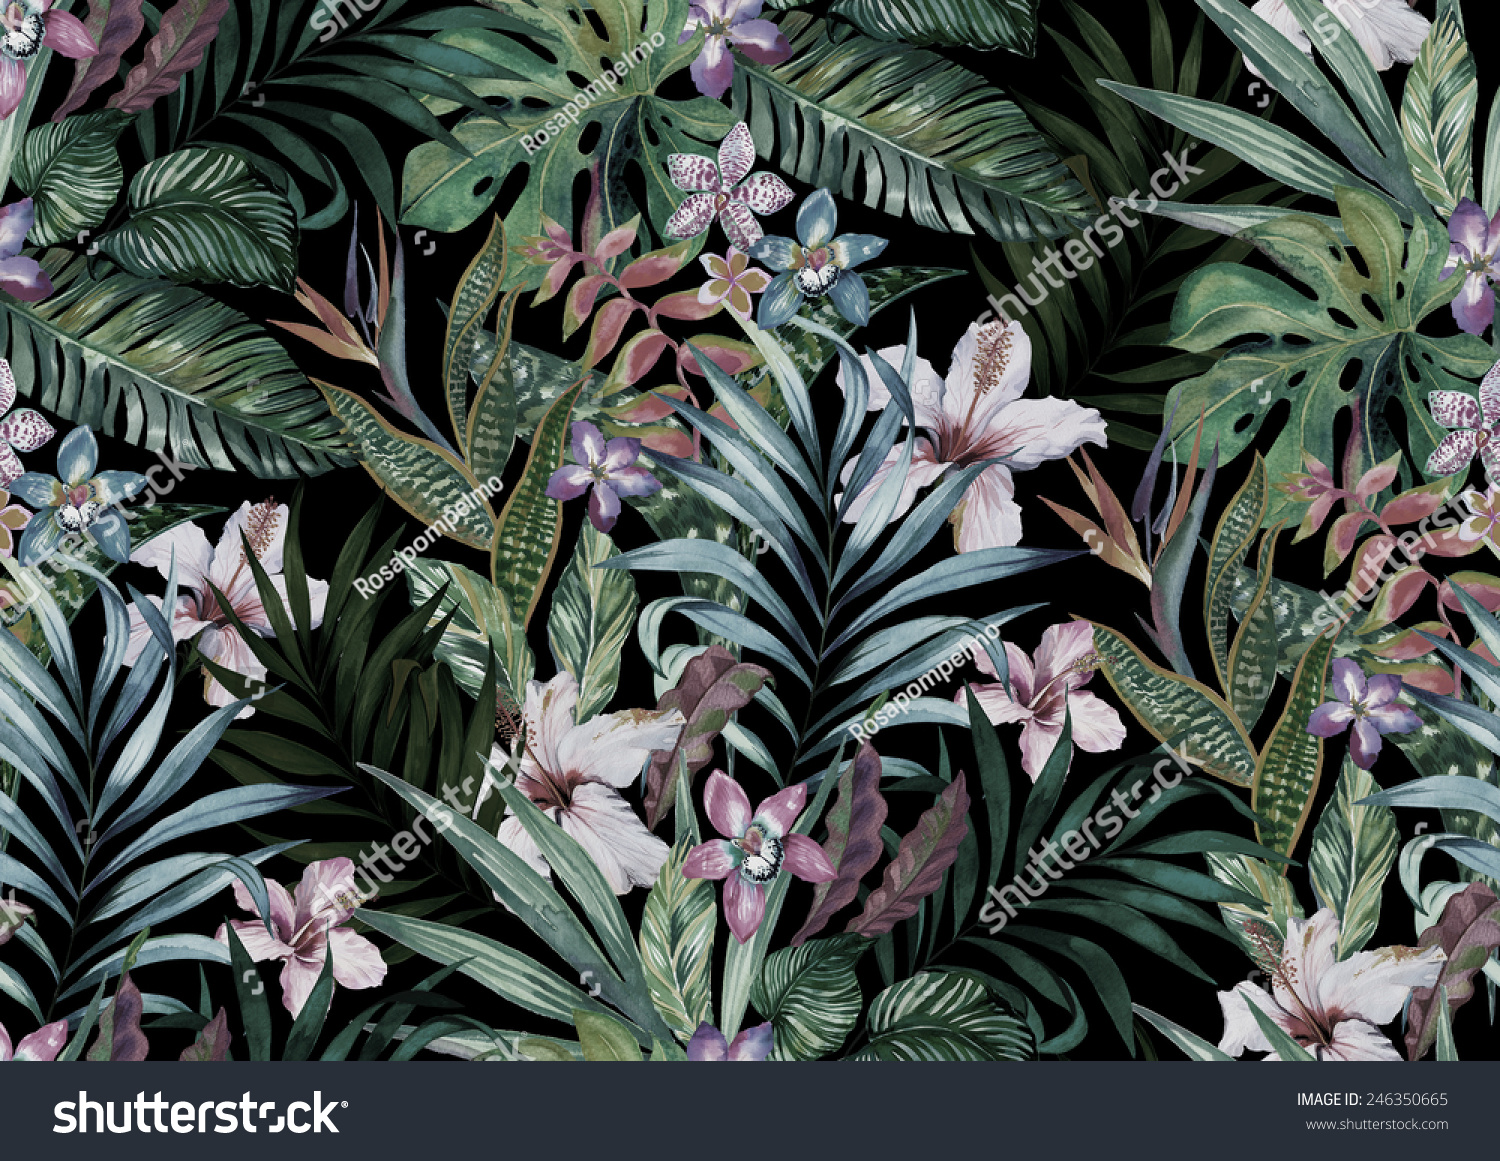 Tropical Floral Print Variety Of Jungle And Island Flowers In Bouquets A Dark Exotic